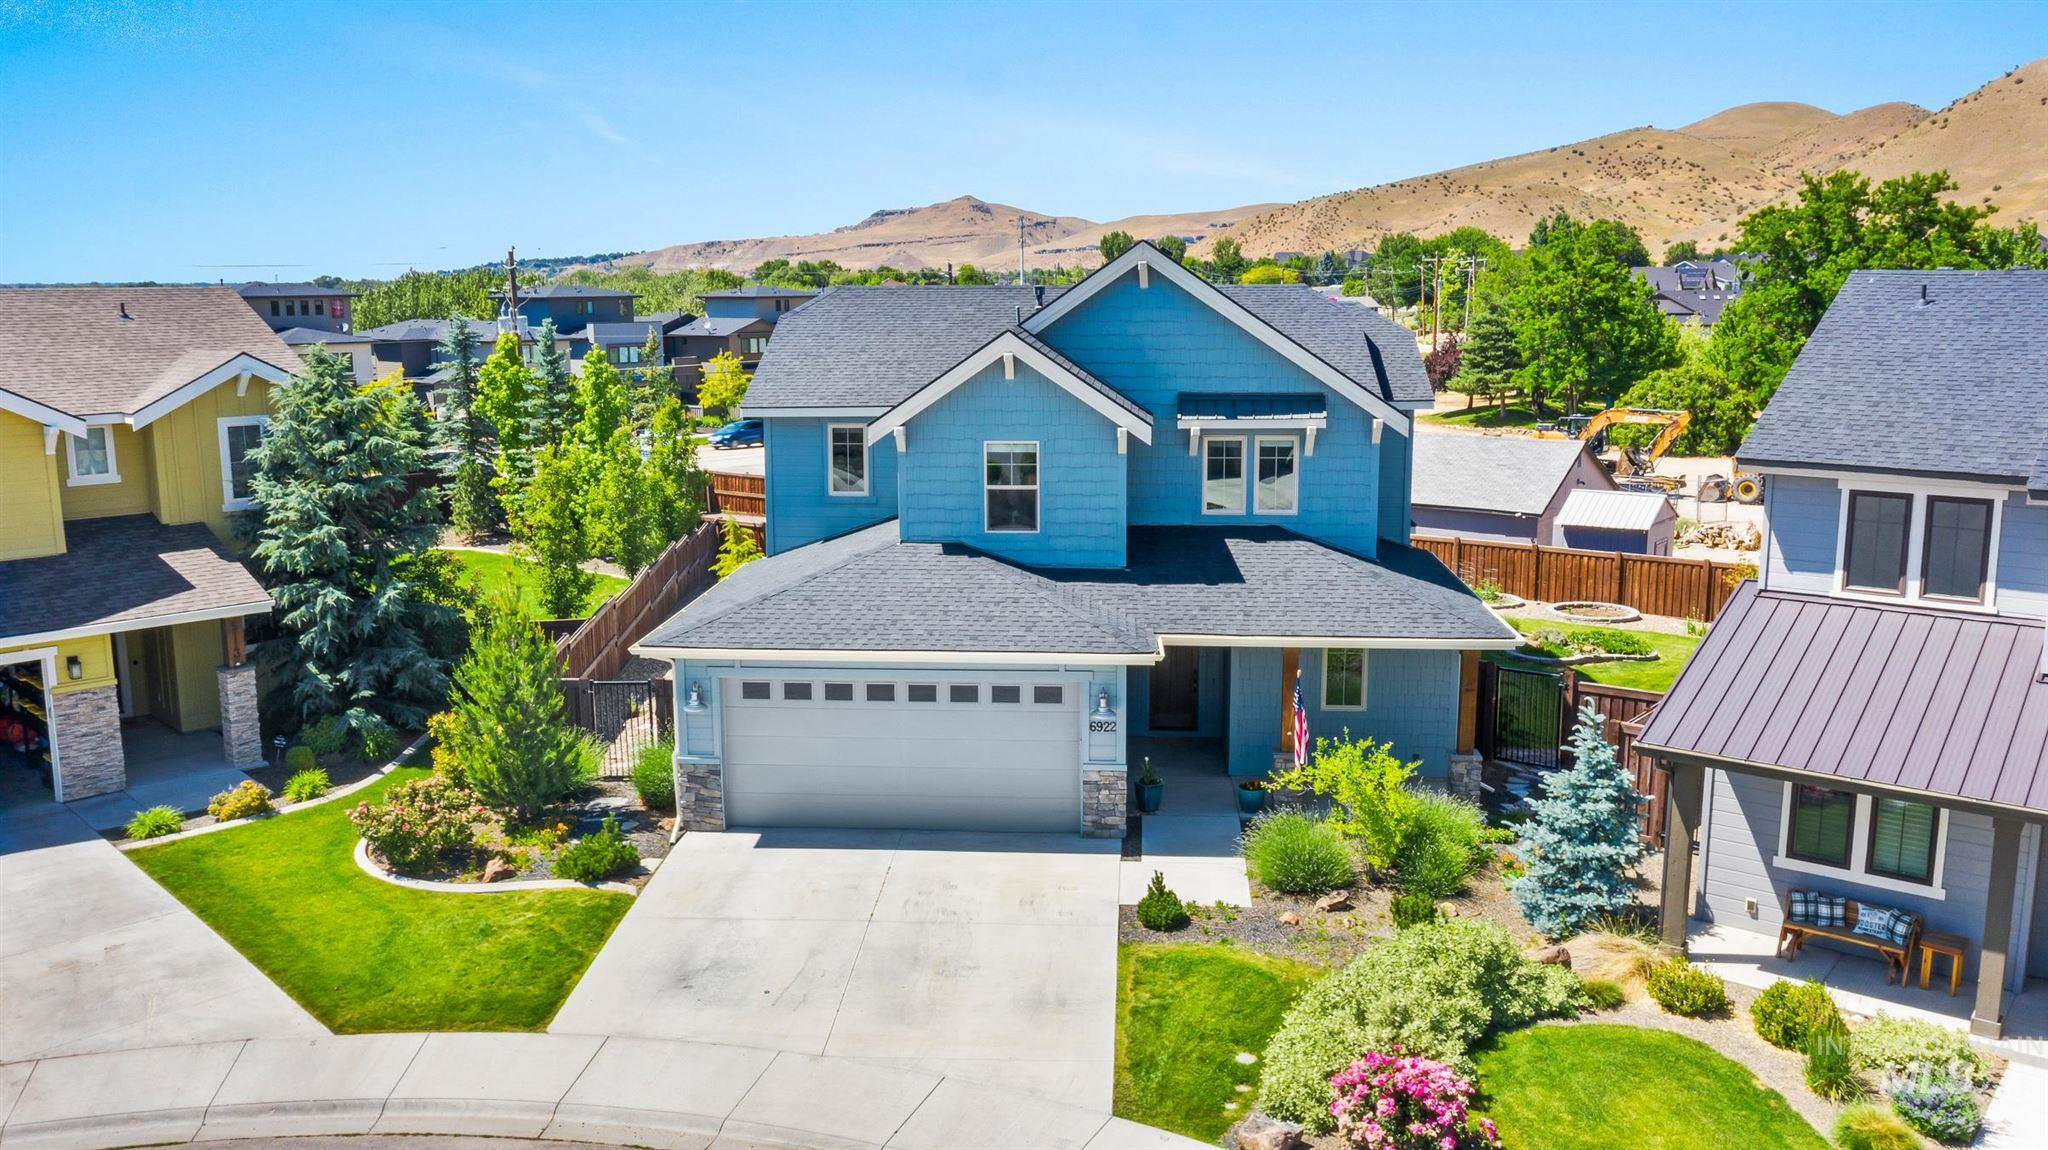 OPEN 6/14 from 11-1 Stunning nearly new home, walking distance to the NE foothills, greenbelt, river, & top ranked schools. Modern lines & designer finishes adorn this cheery home on a .21 lot overlooking the mountains w/stunning sunsets, organic garden beds & covered patio w/no back neighbors. Highly sought after open layout w/guest suite on main level. Dream kitchen features walk-in pantry, wine rack, expansive island & high end appliances. Luxurious master w/custom tiled shower, soaker tub & huge closet.